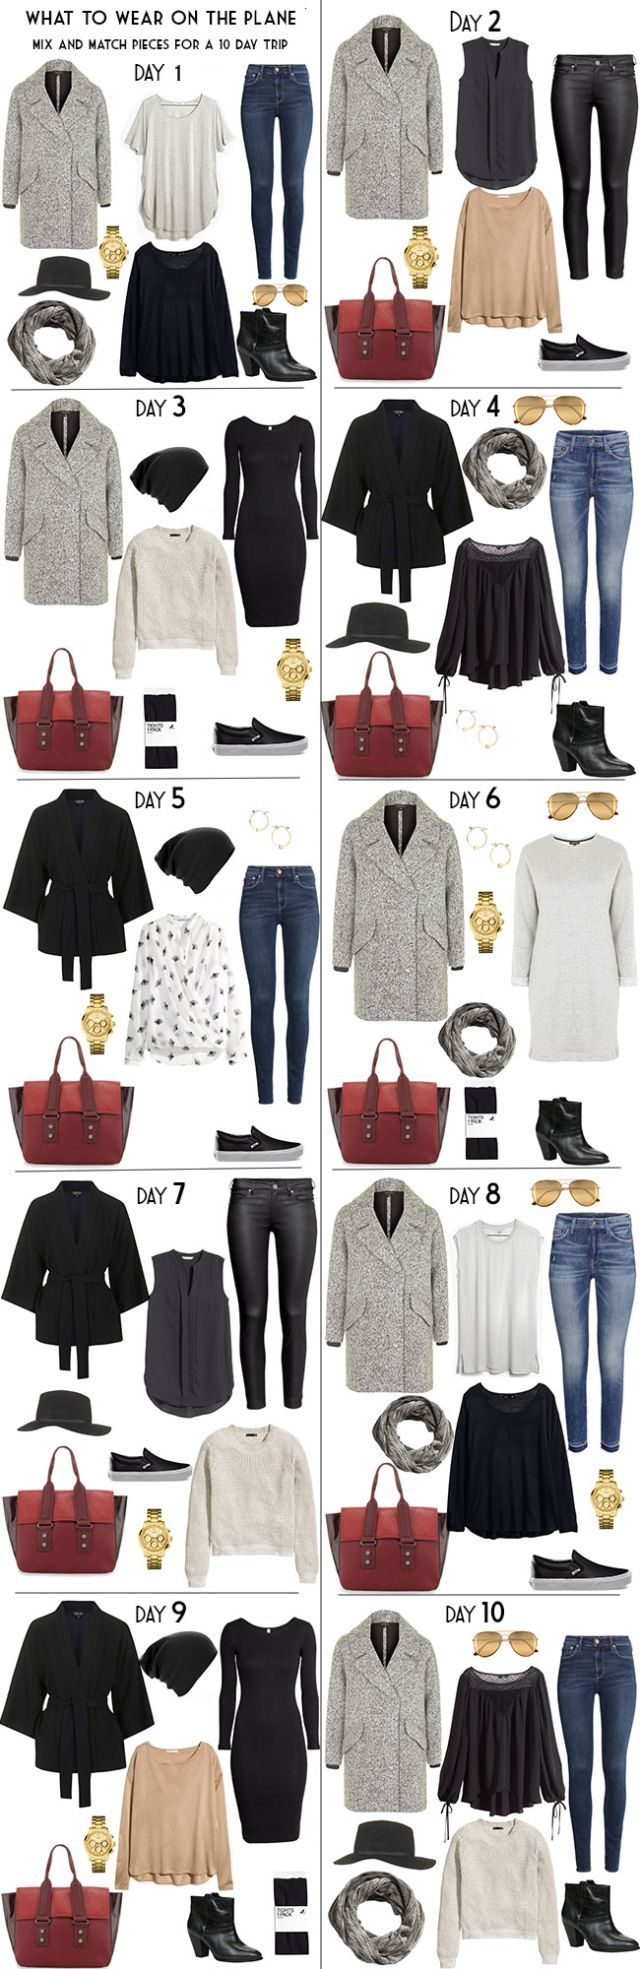 Packing Light. What to Pack for 10 Days in Vienna, Austria. 10 Day Outfit options, The 10 Night outfit options and the full packing list available on the Blog. #packinglight #travellight #packinglist #vienna